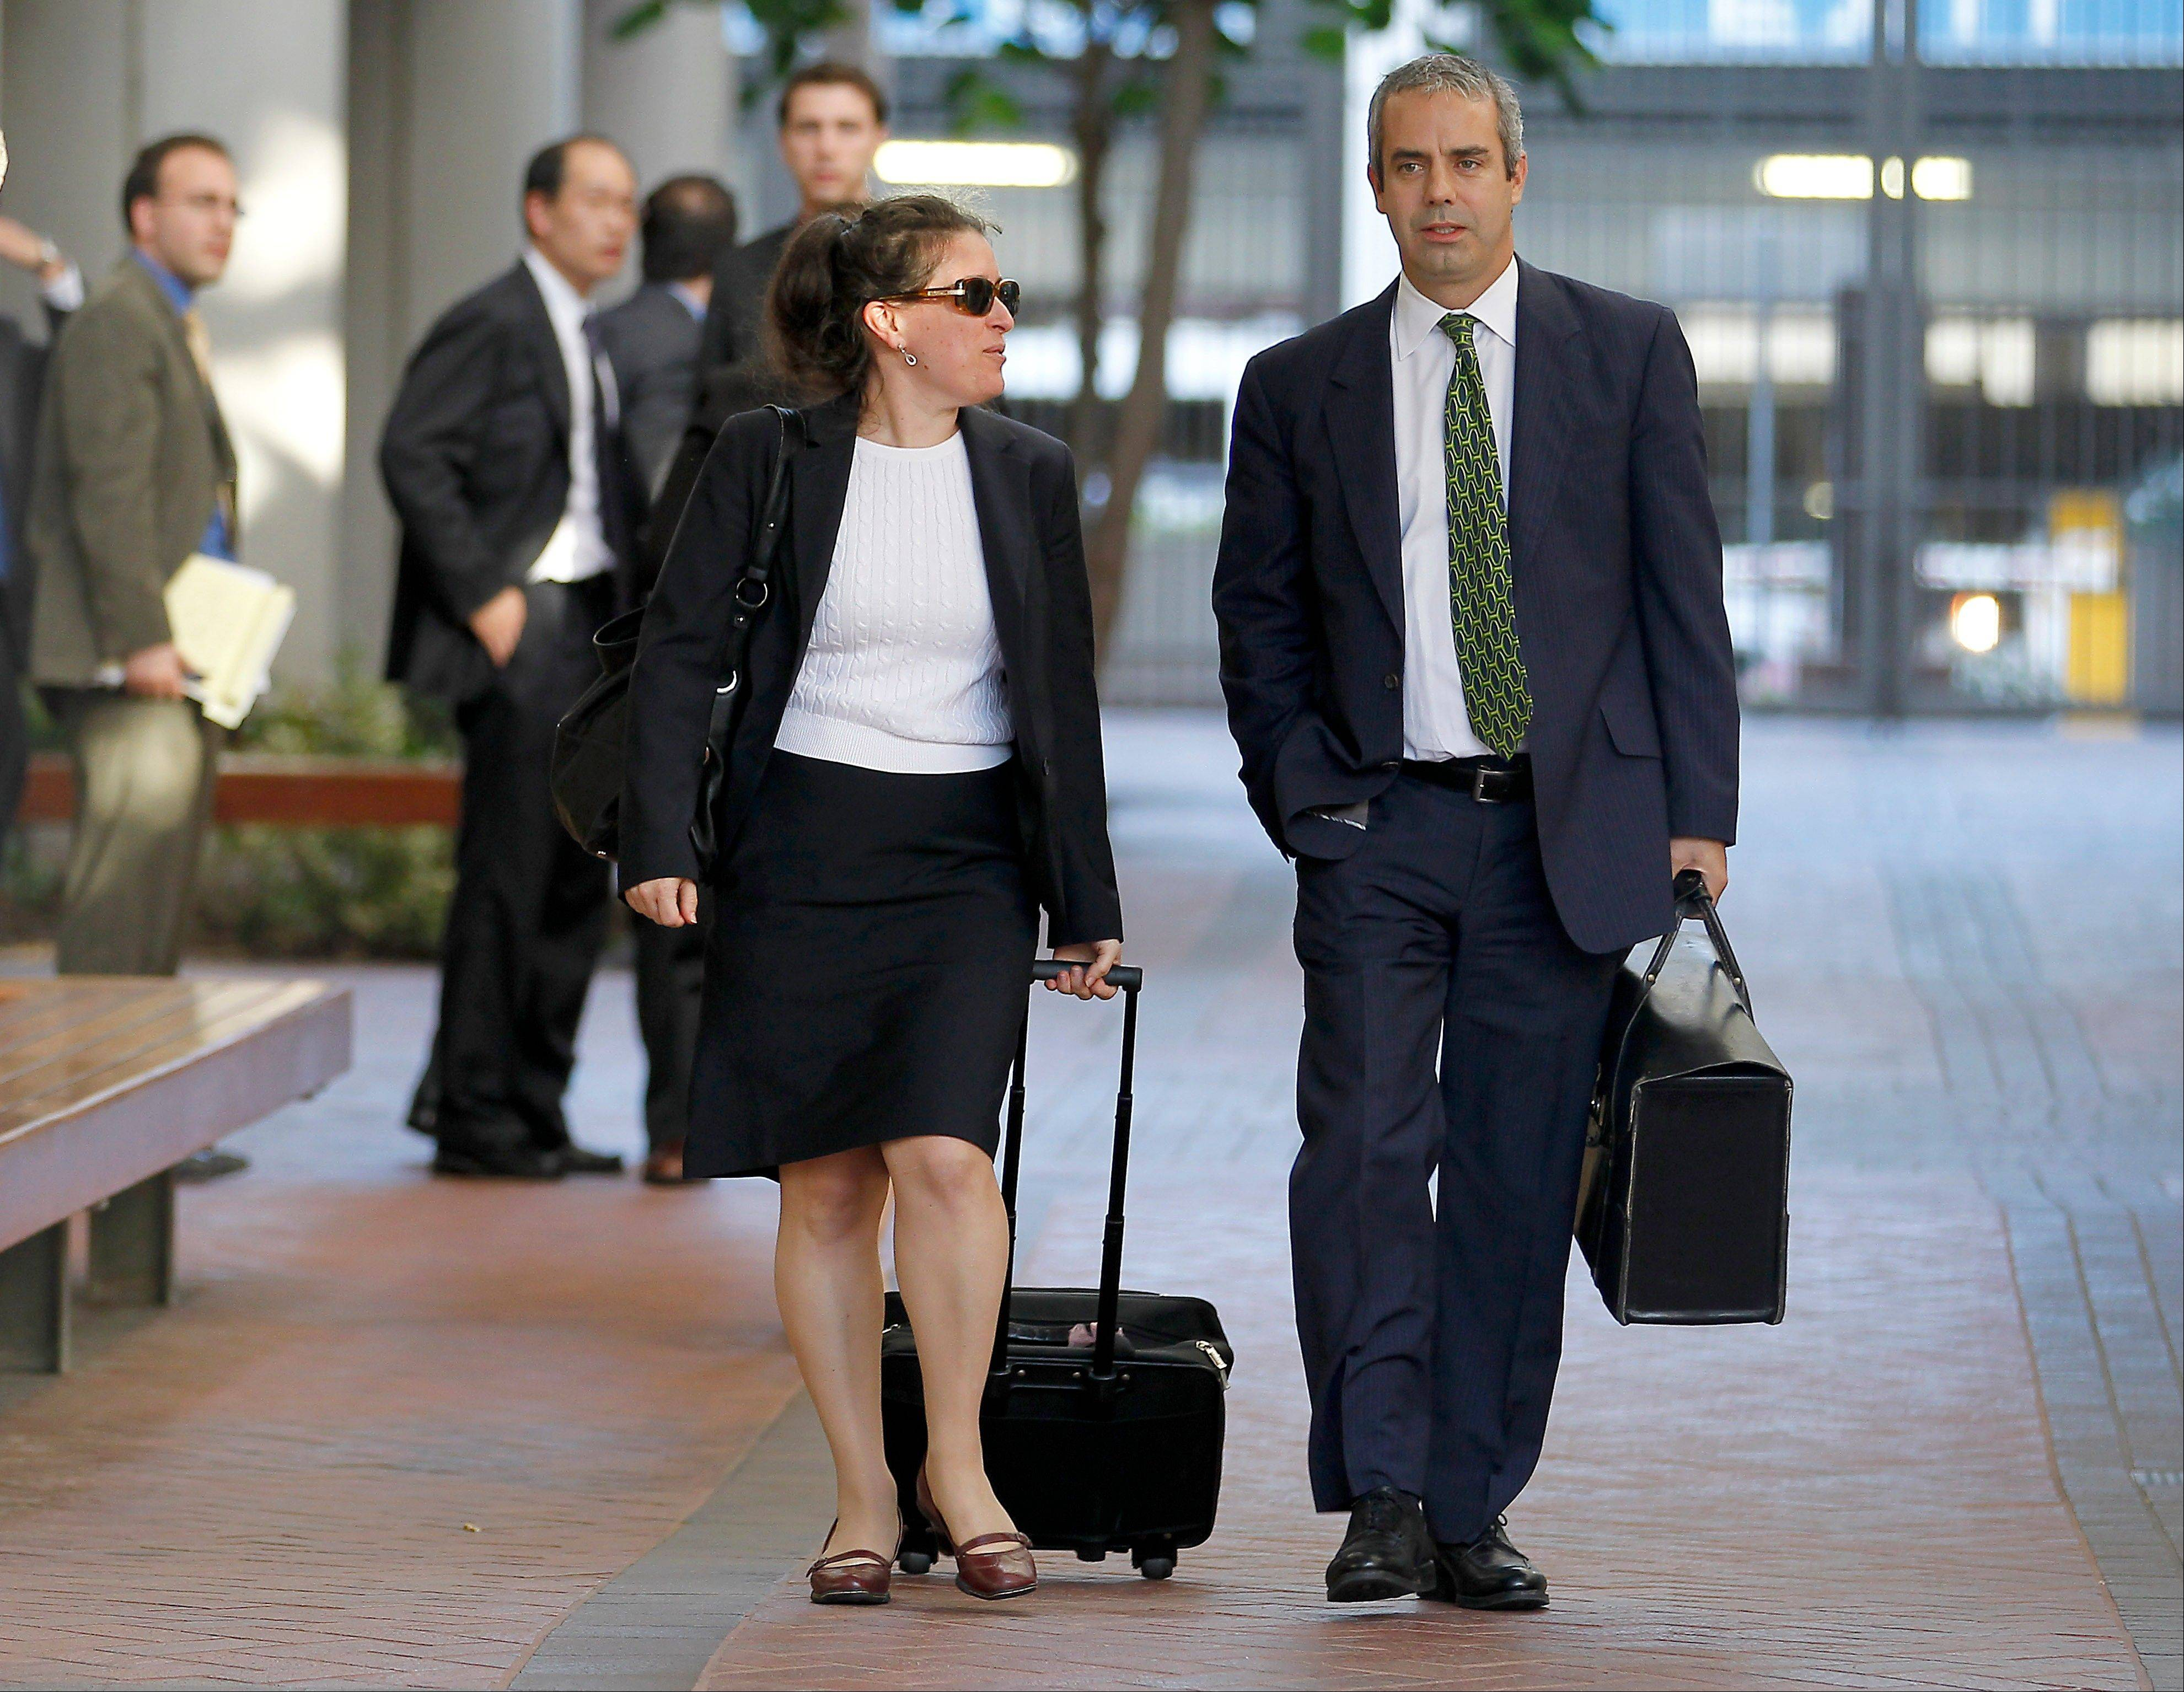 Kevin Johnson, right, and Victoria Maroulis, left, attorneys for Samsung, leave the US Courthouse and Federal building after a jury reached a decision in the Apple Samsung trial.